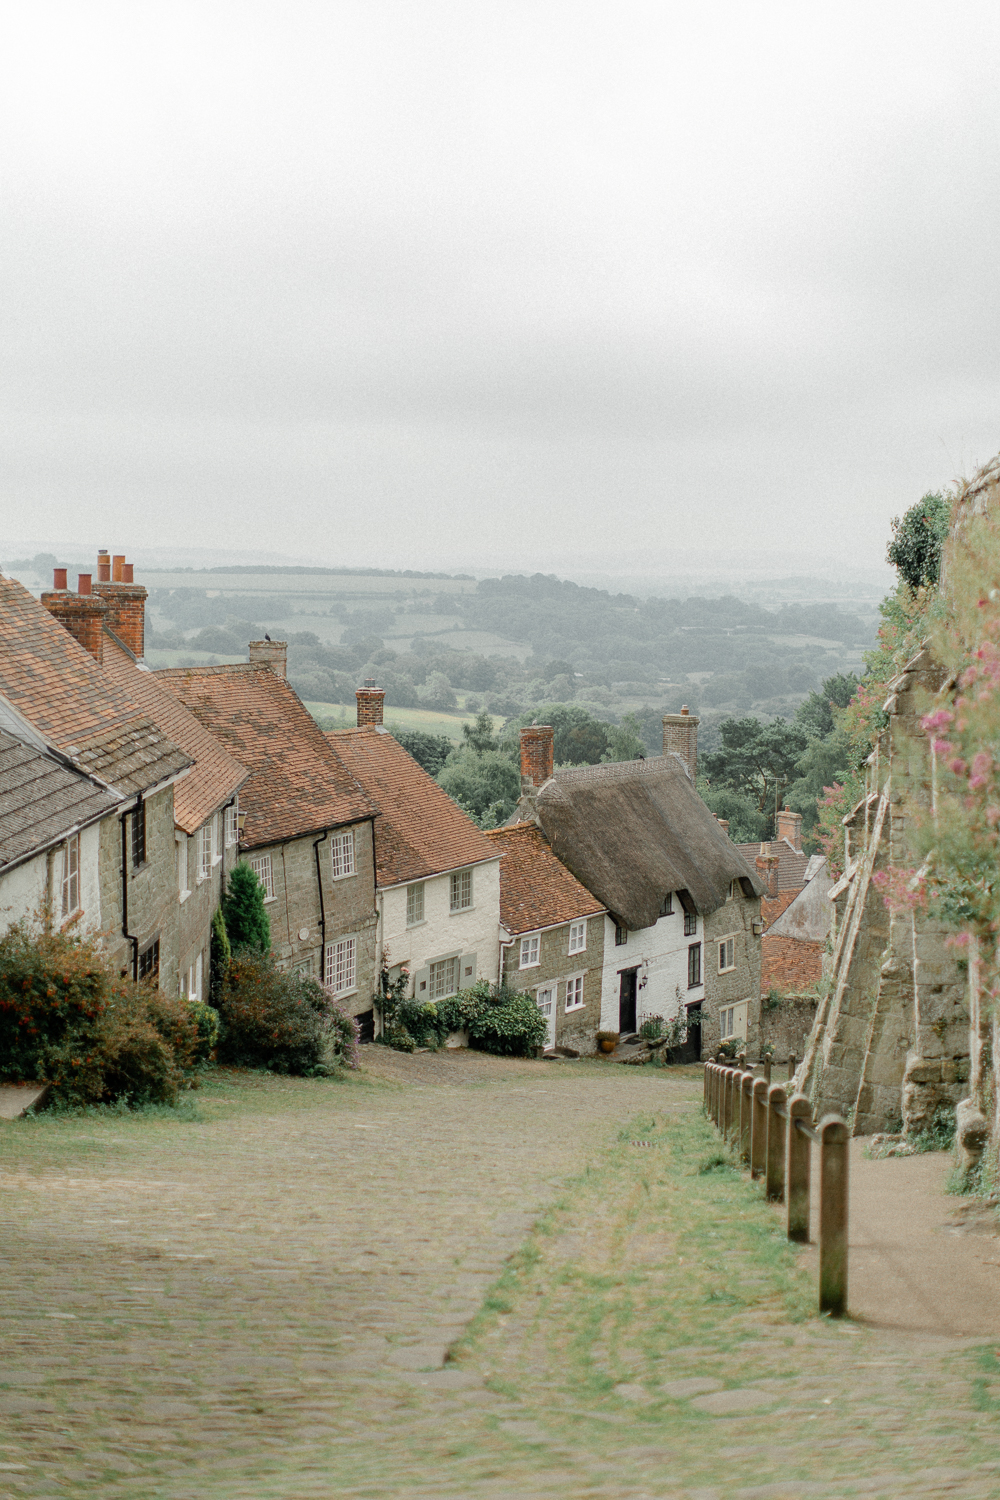 Gold Hill, Shaftesbury, UK